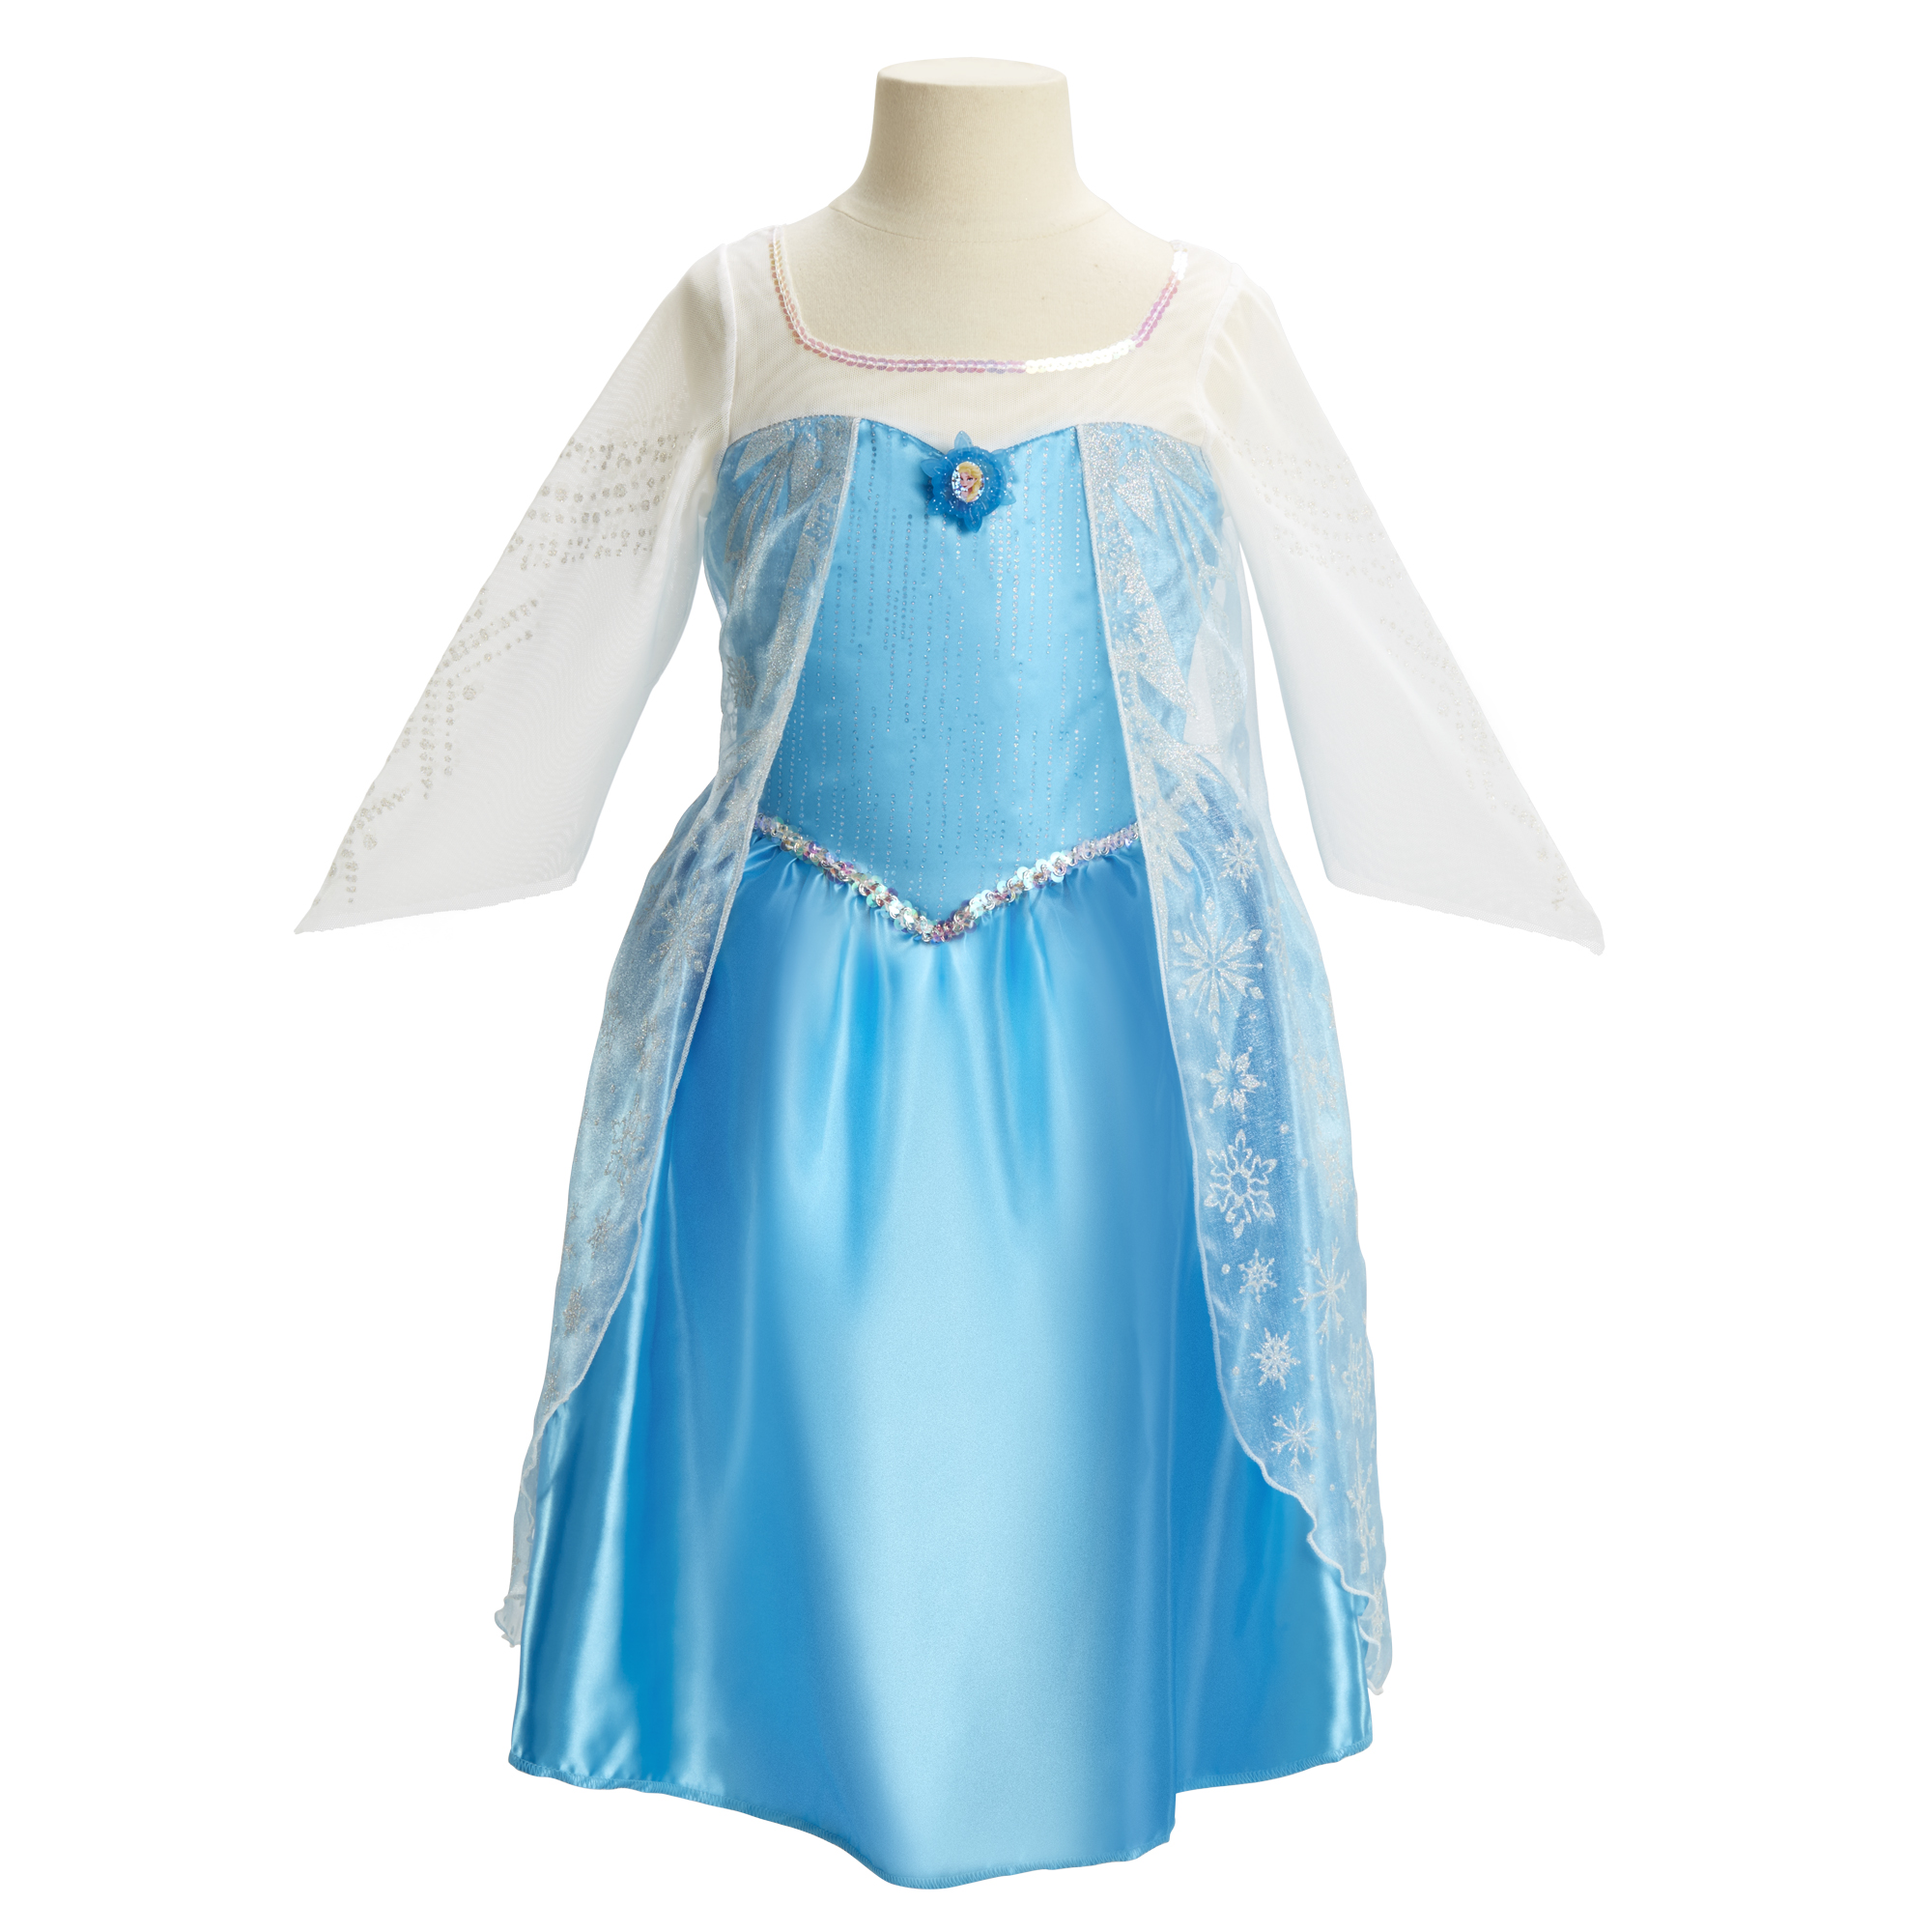 Elsa Blue Dress Disney Frozen